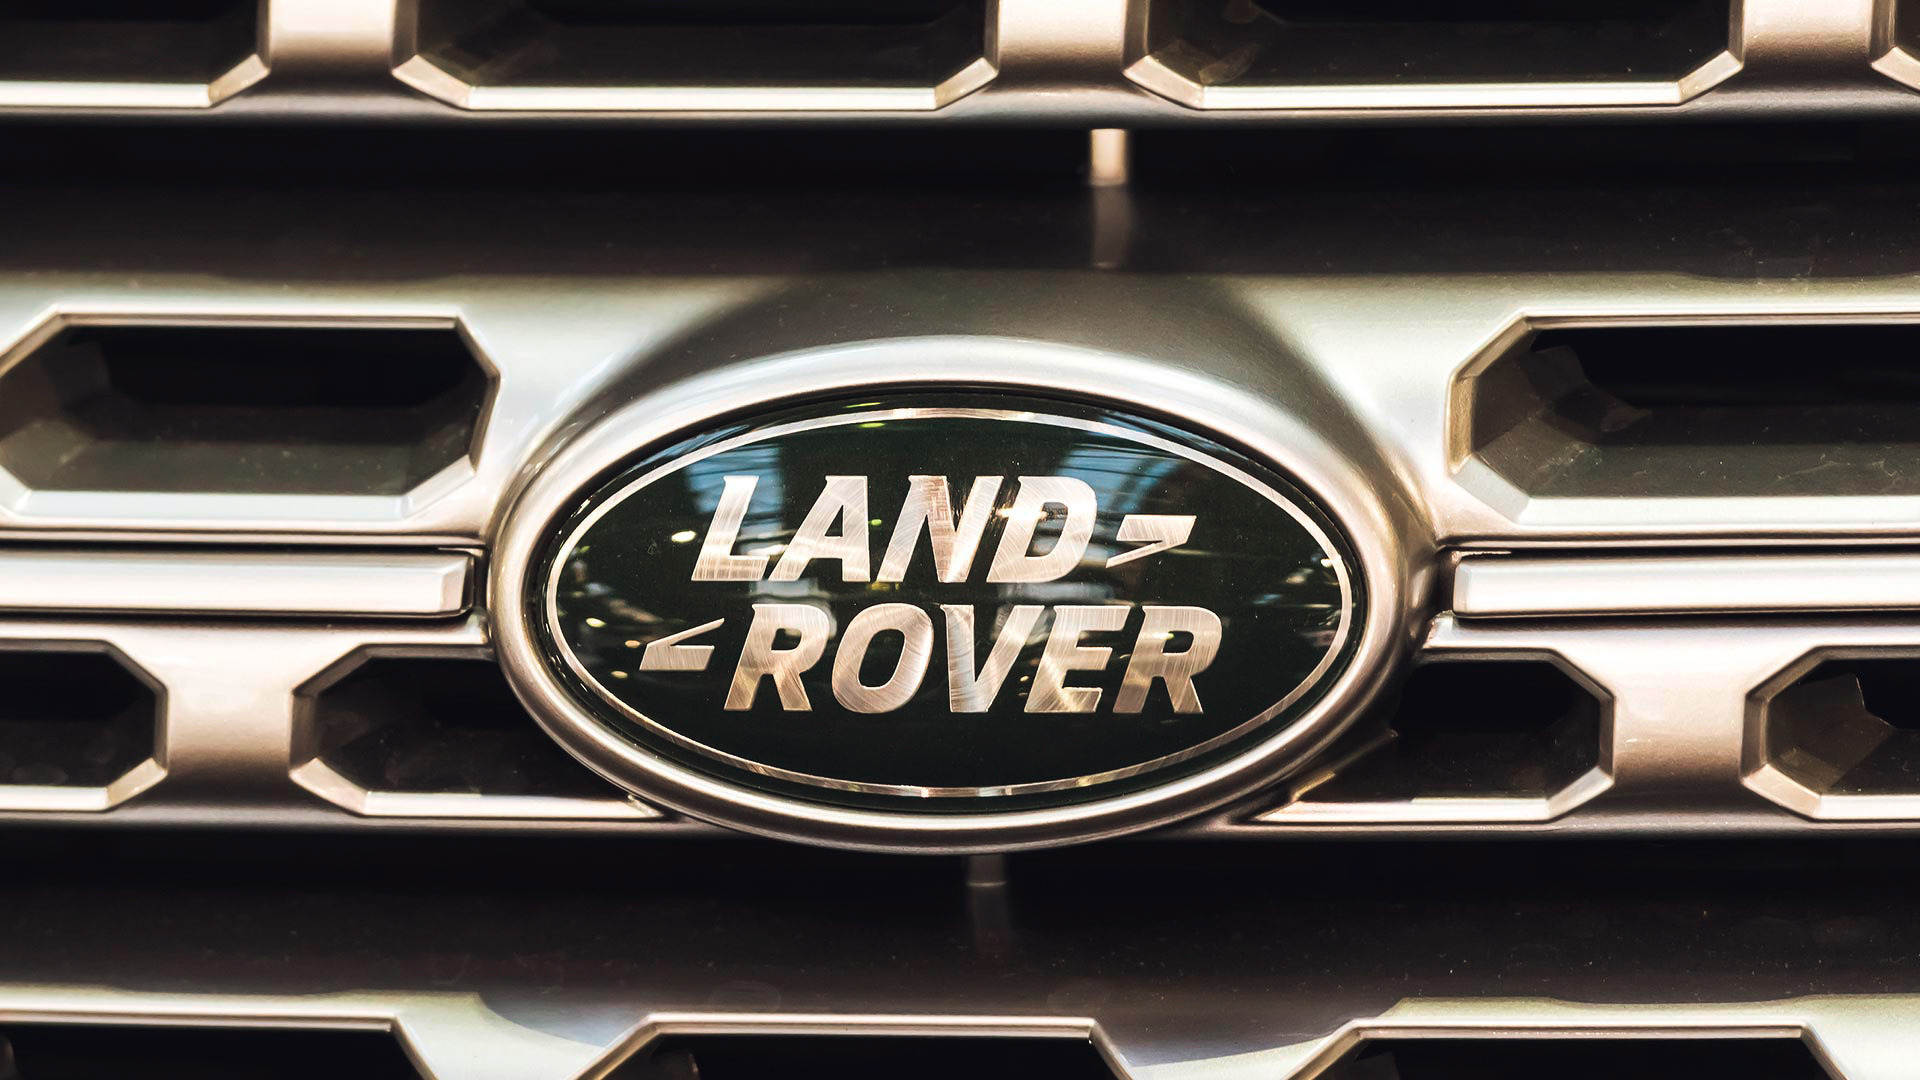 Land Rover News and Reviews